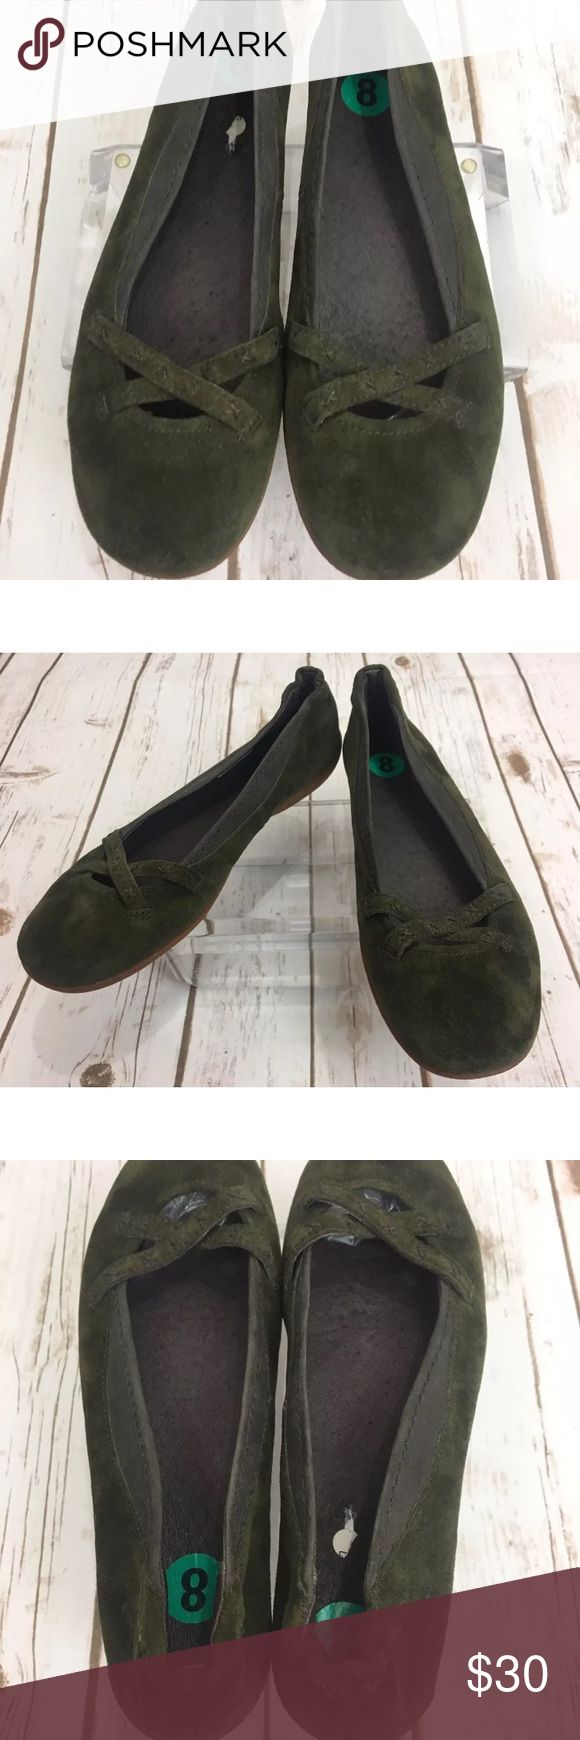 Patagonia slides casual shoe green Suede size 8 Patagonia 'Ebony Java Green' Suede Flats Women's Size 8 Minimal wear shown Refer to pictures for exact description and condition Patagonia Shoes Flats & Loafers